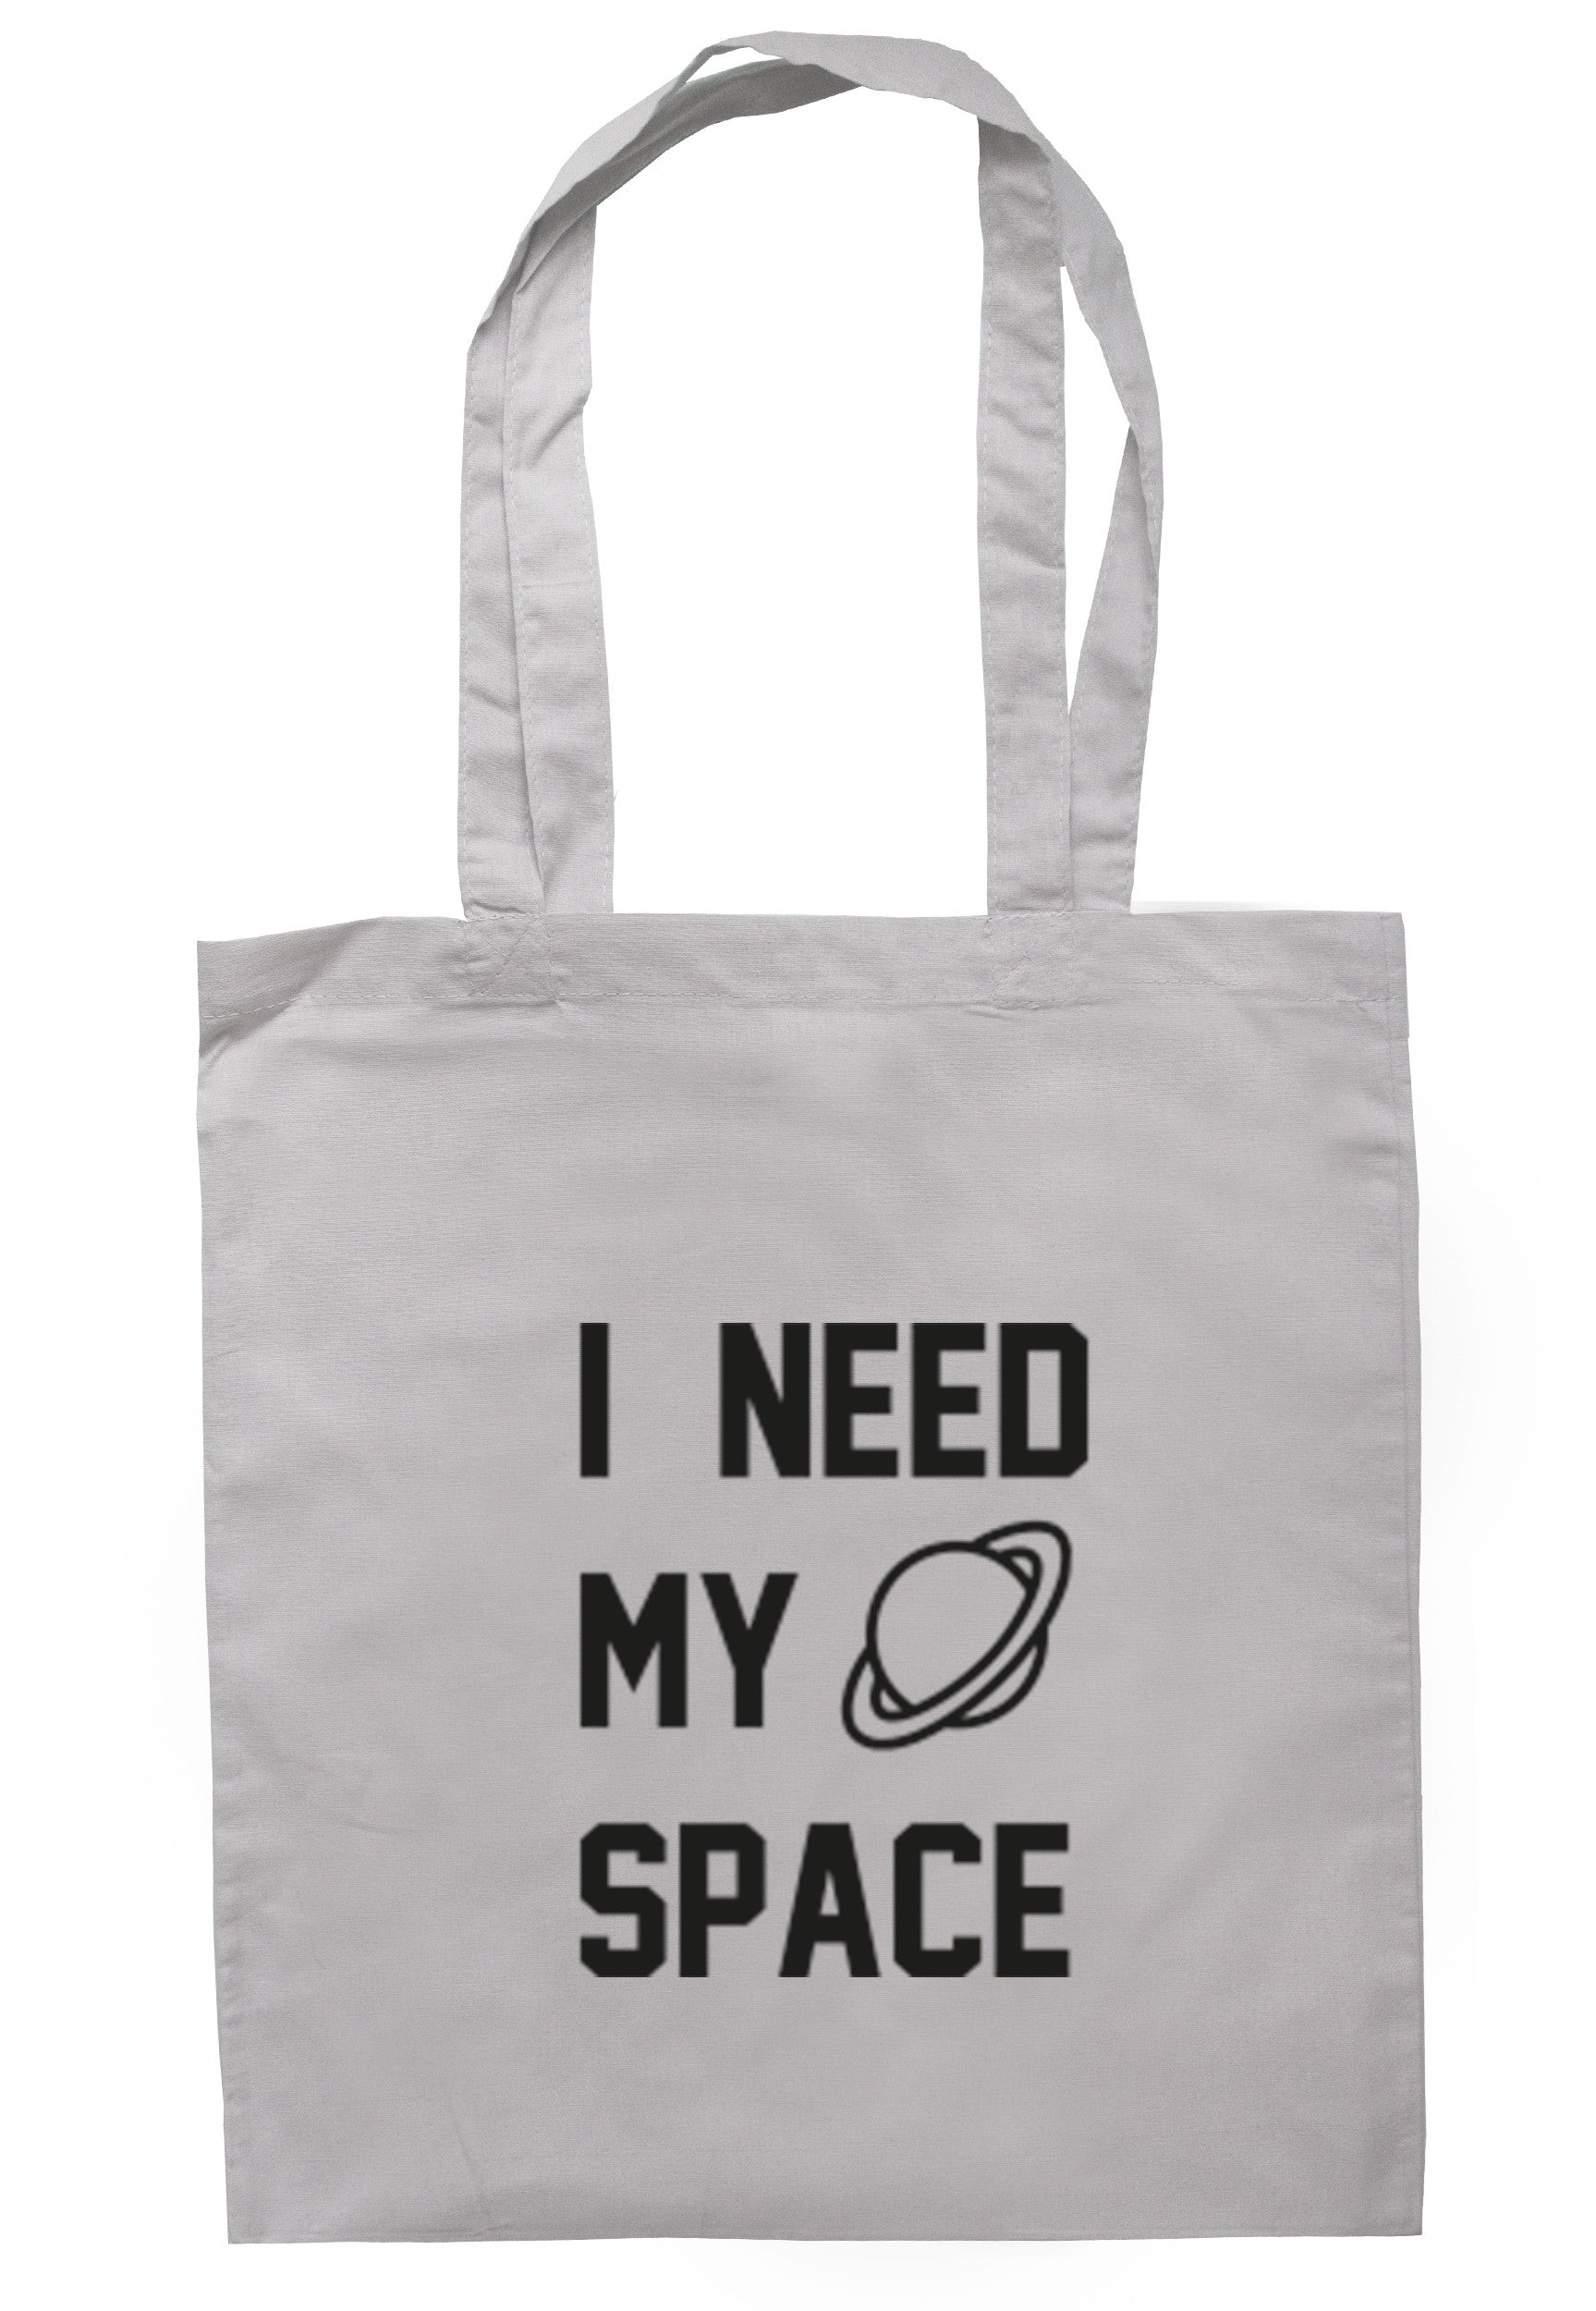 I Need My Space Tote Bag TB0337 - Illustrated Identity Ltd.